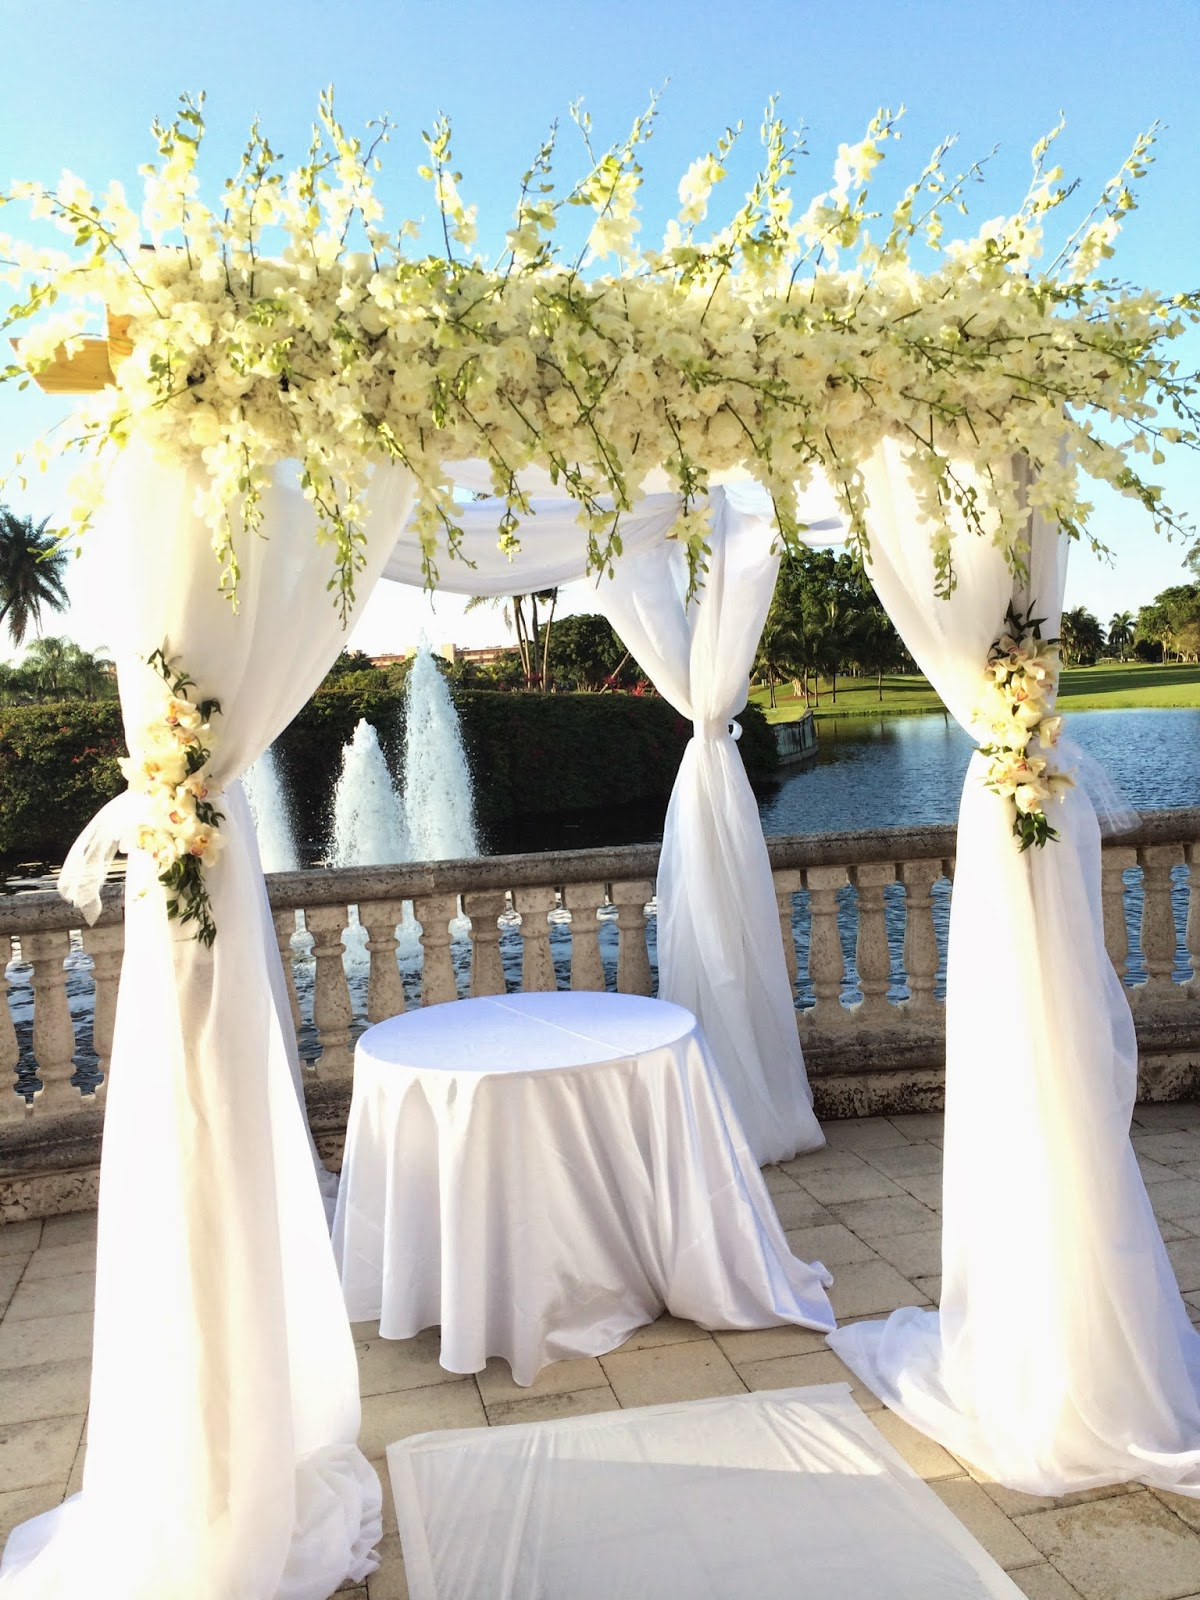 Wedding Gazebo Decorations Images Wedding Decoration Ideas Stunning Gazebo  Decorations For Wedding Photos Best Hairstyles White